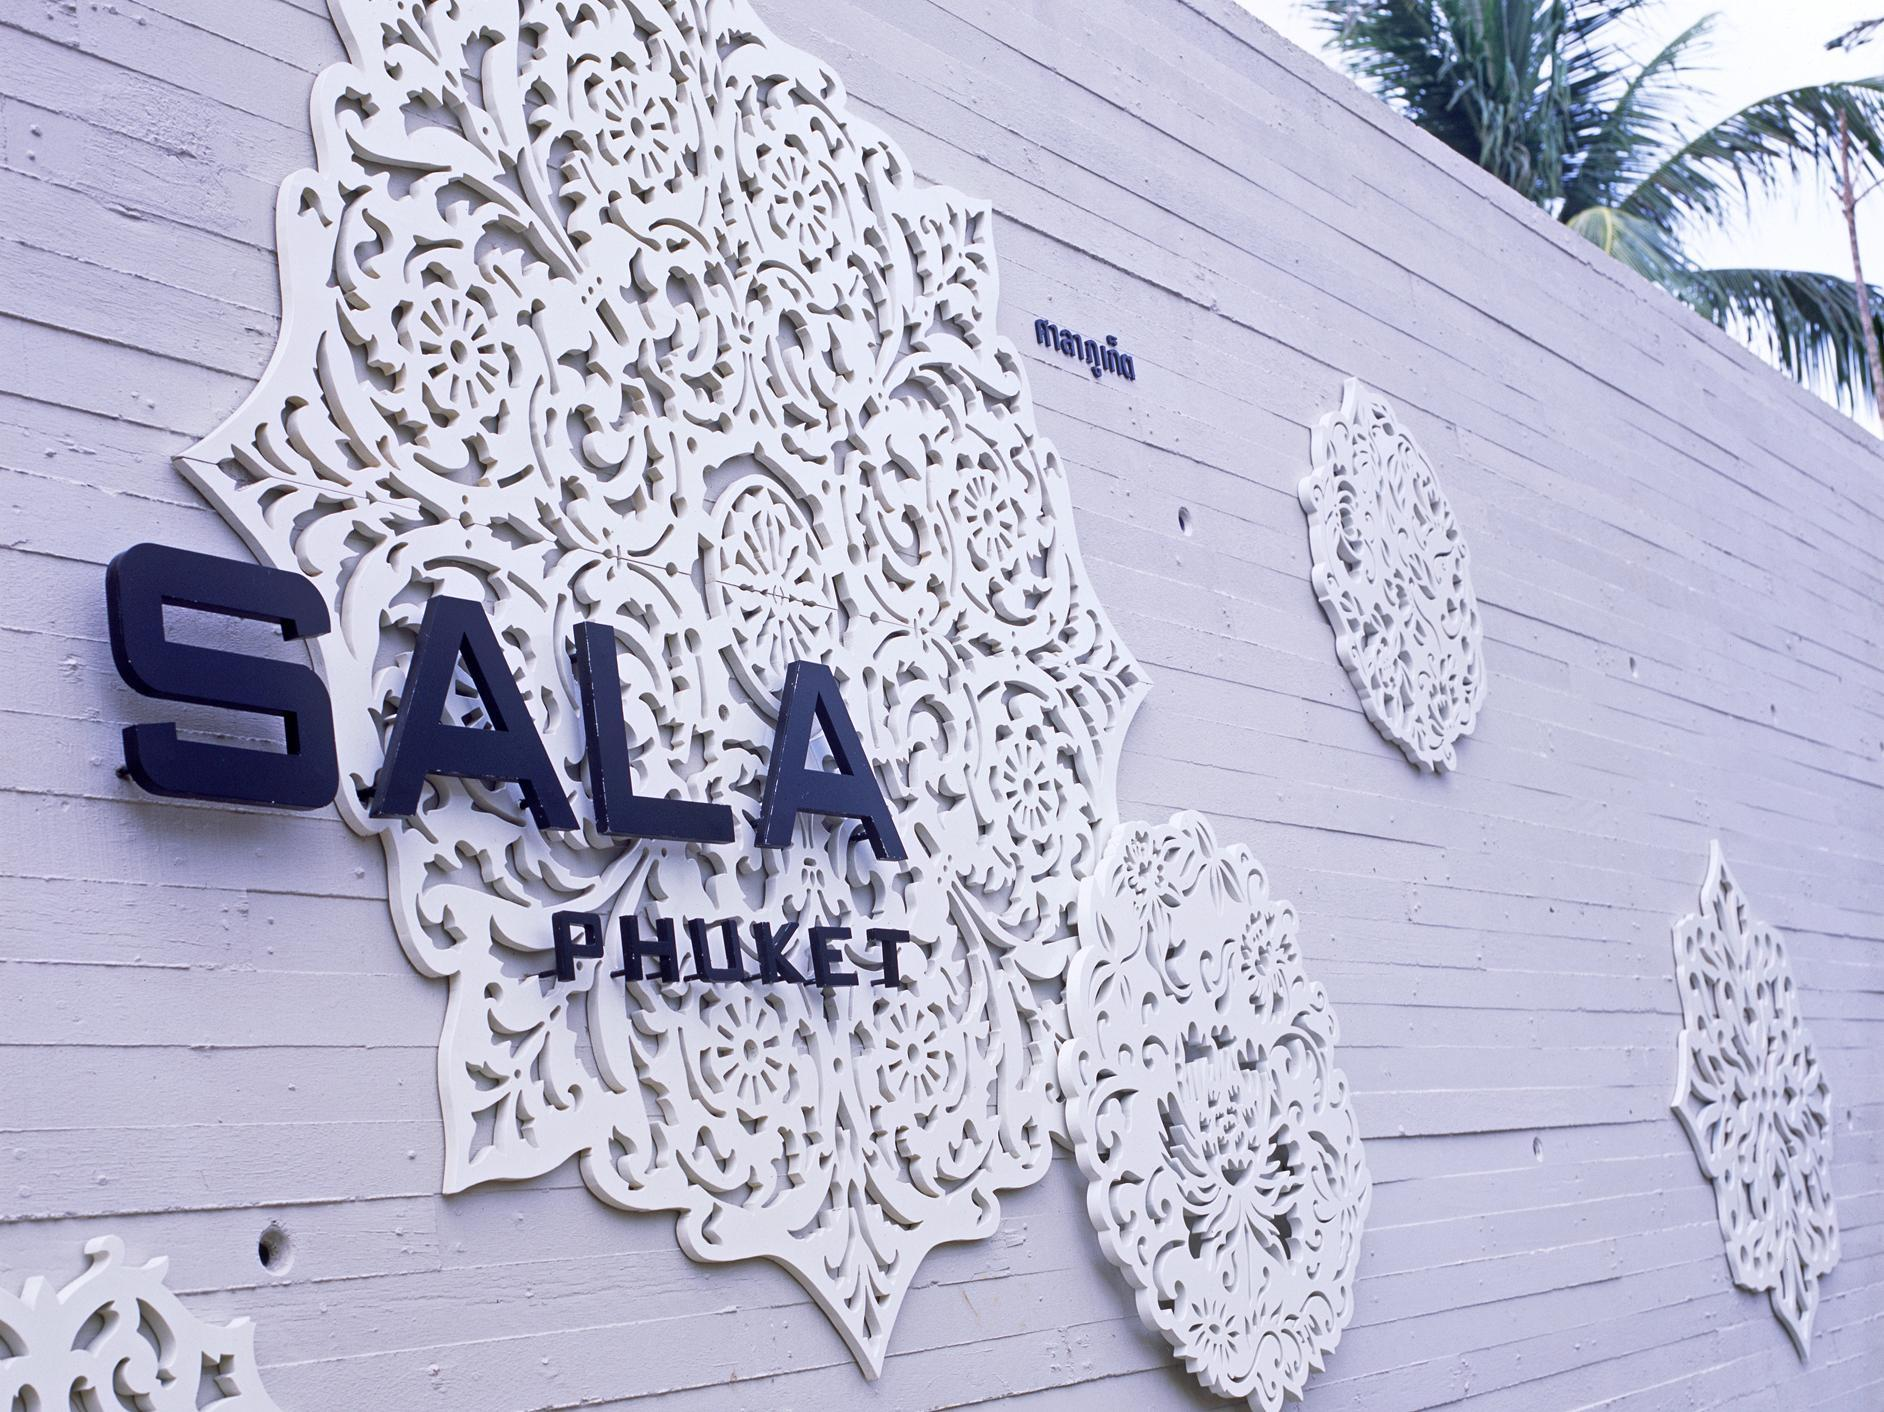 SALA Phuket Resort and Spa12